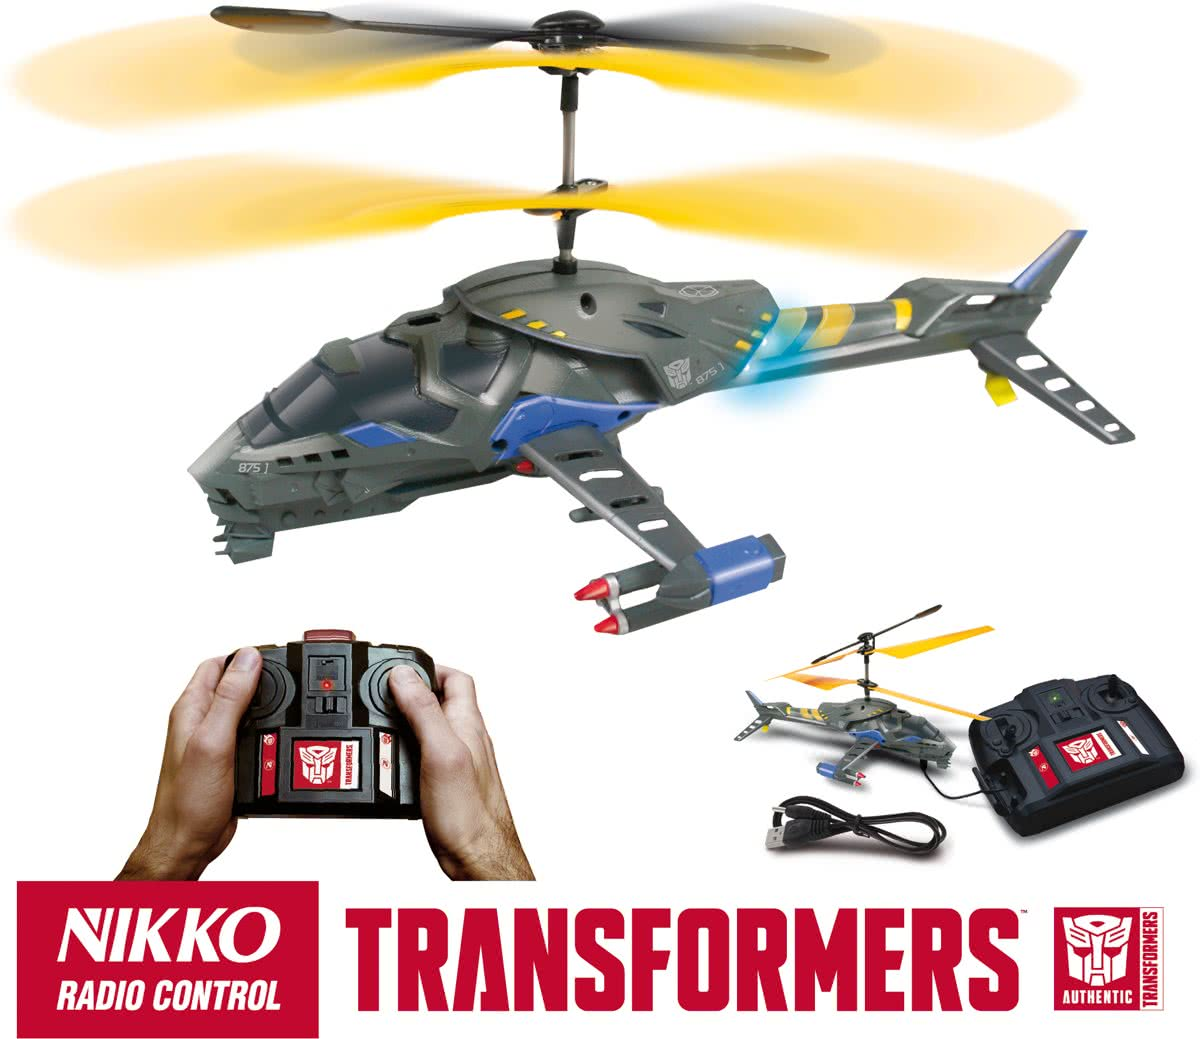 Transformers Helikopter - RC Helikopter